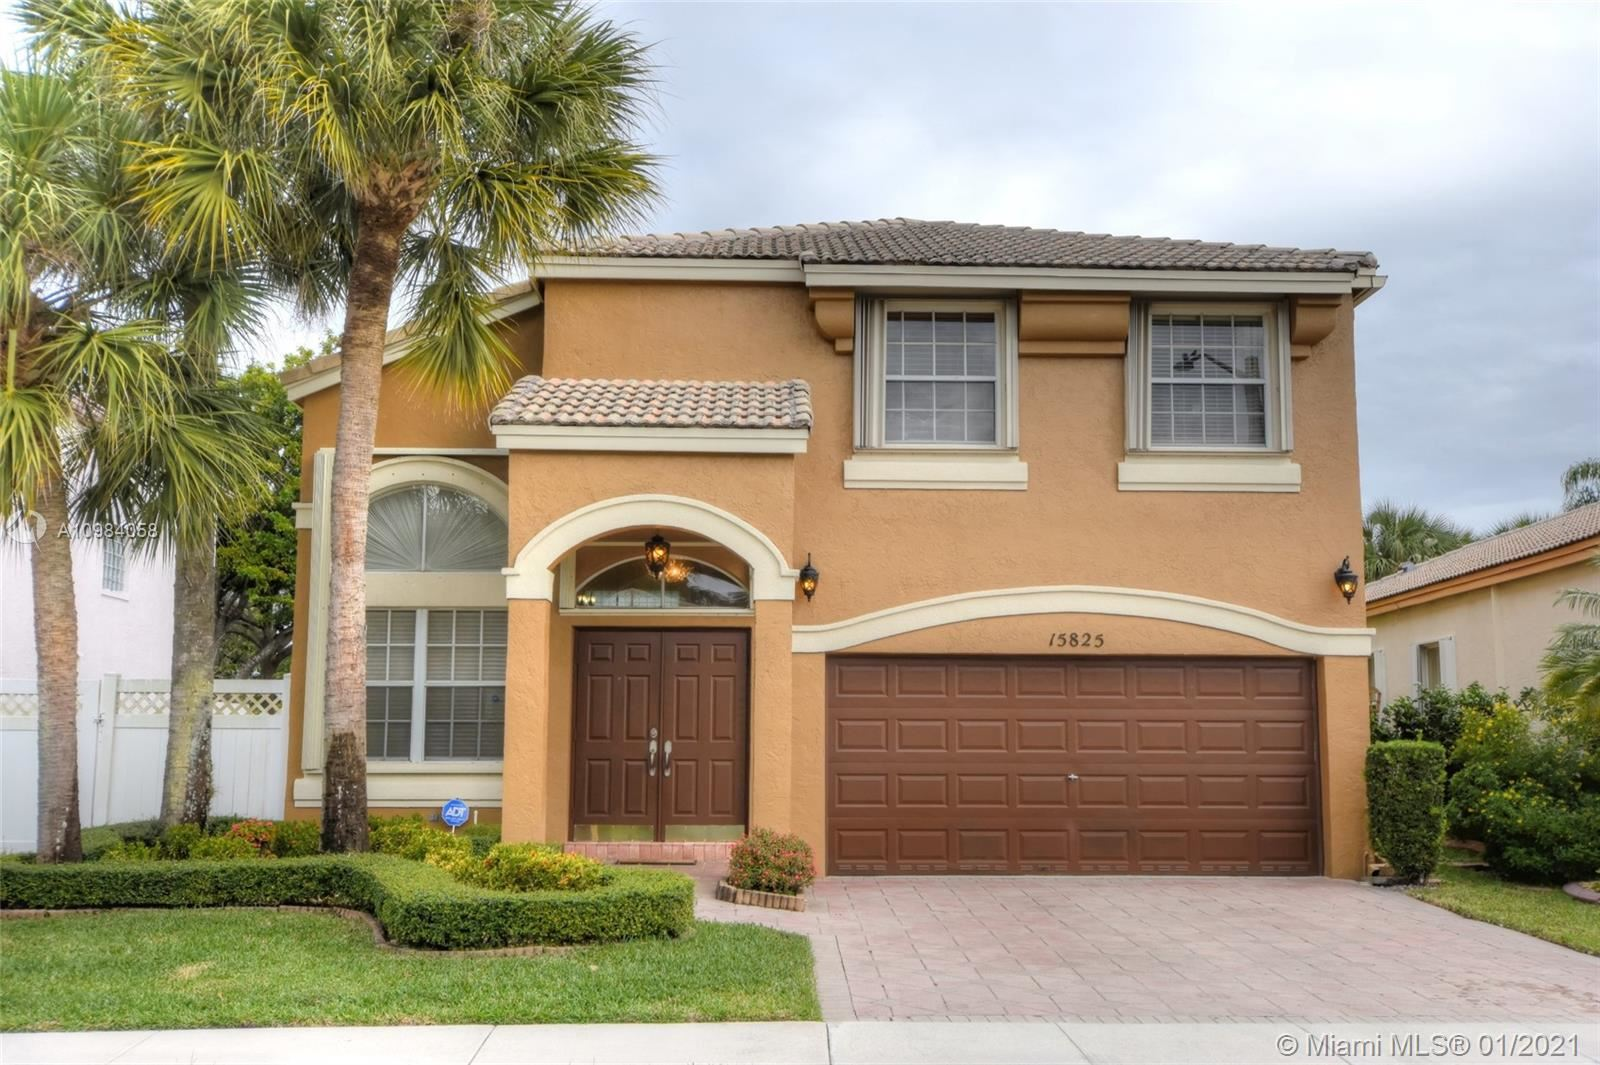 15825 NW 14th Rd, Pembroke Pines, FL 33028 - #: A10984058